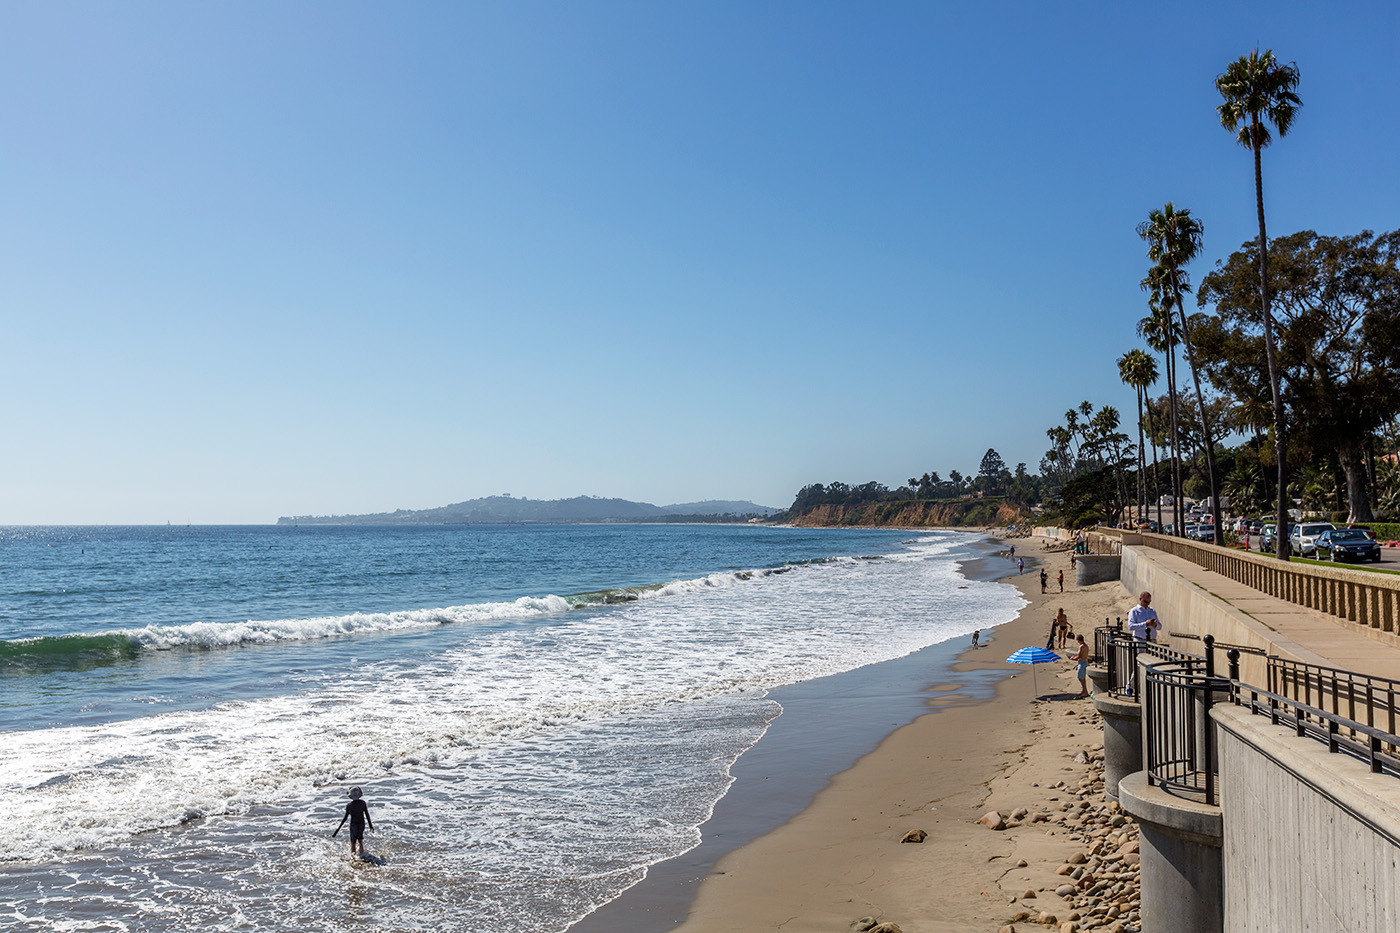 Nearby Butterfly Beach